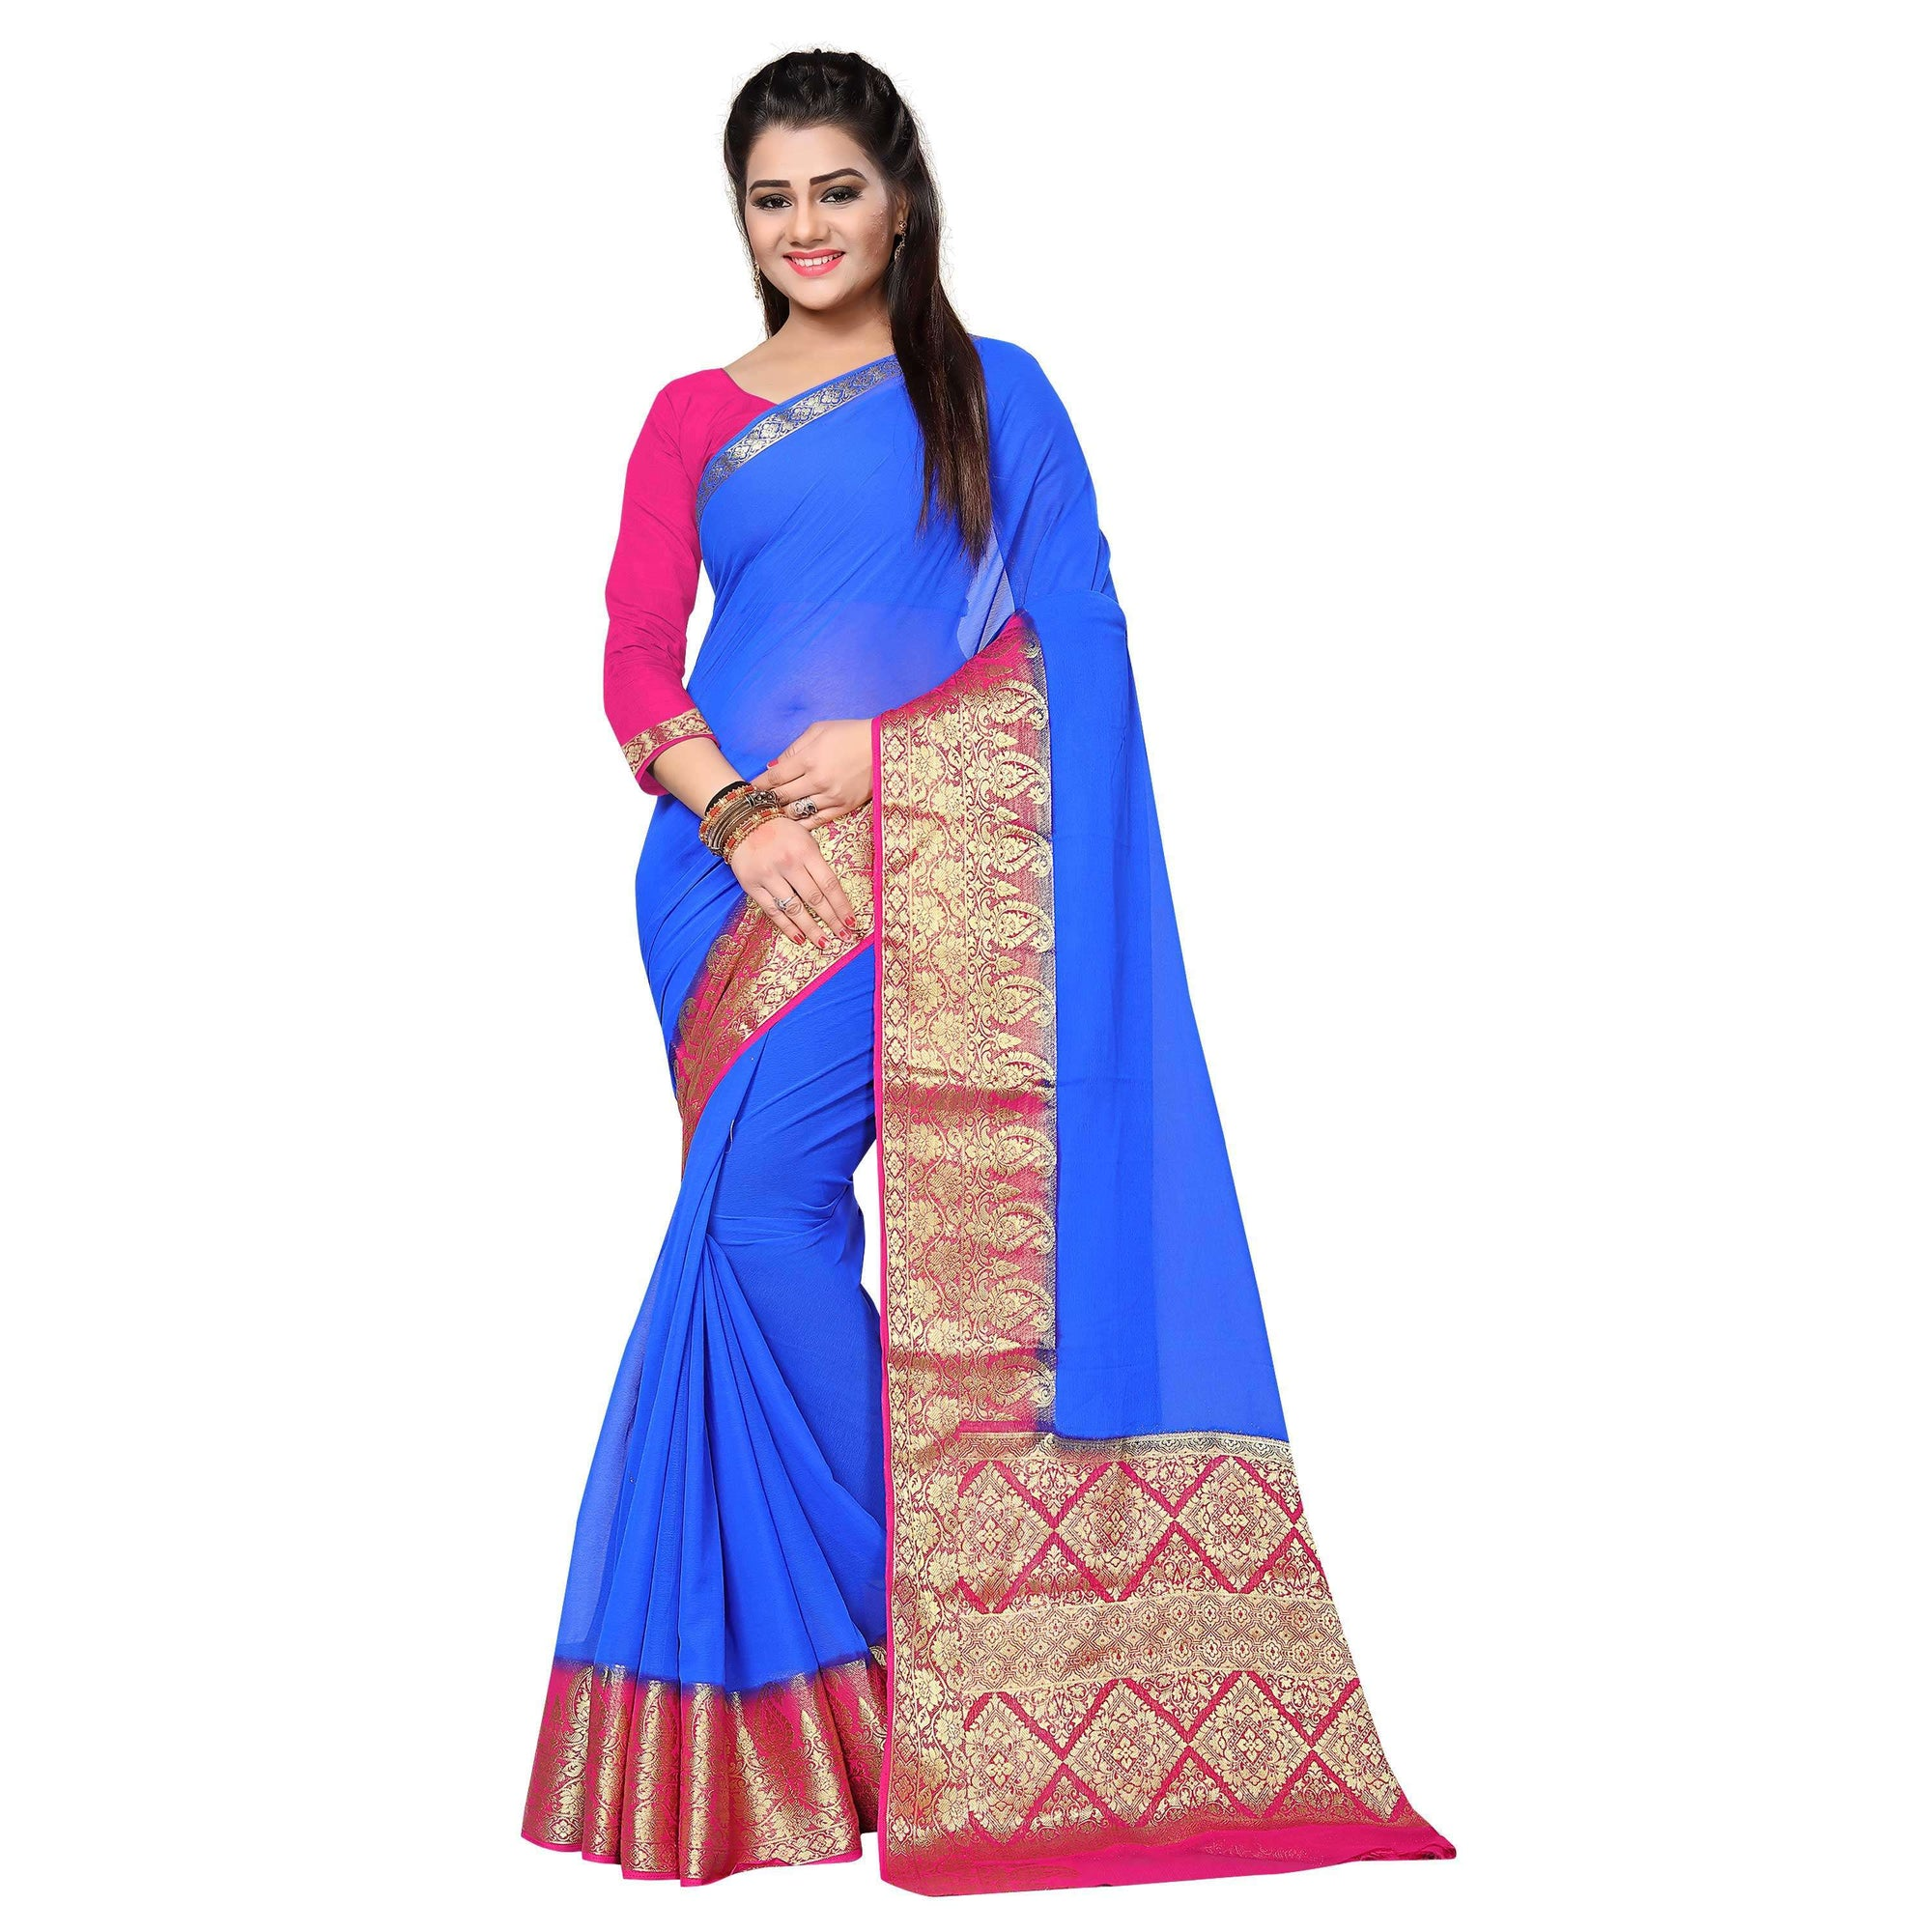 arars plain chiffon silk saree kanjivaram style with blouse saree colour royal blue (323)